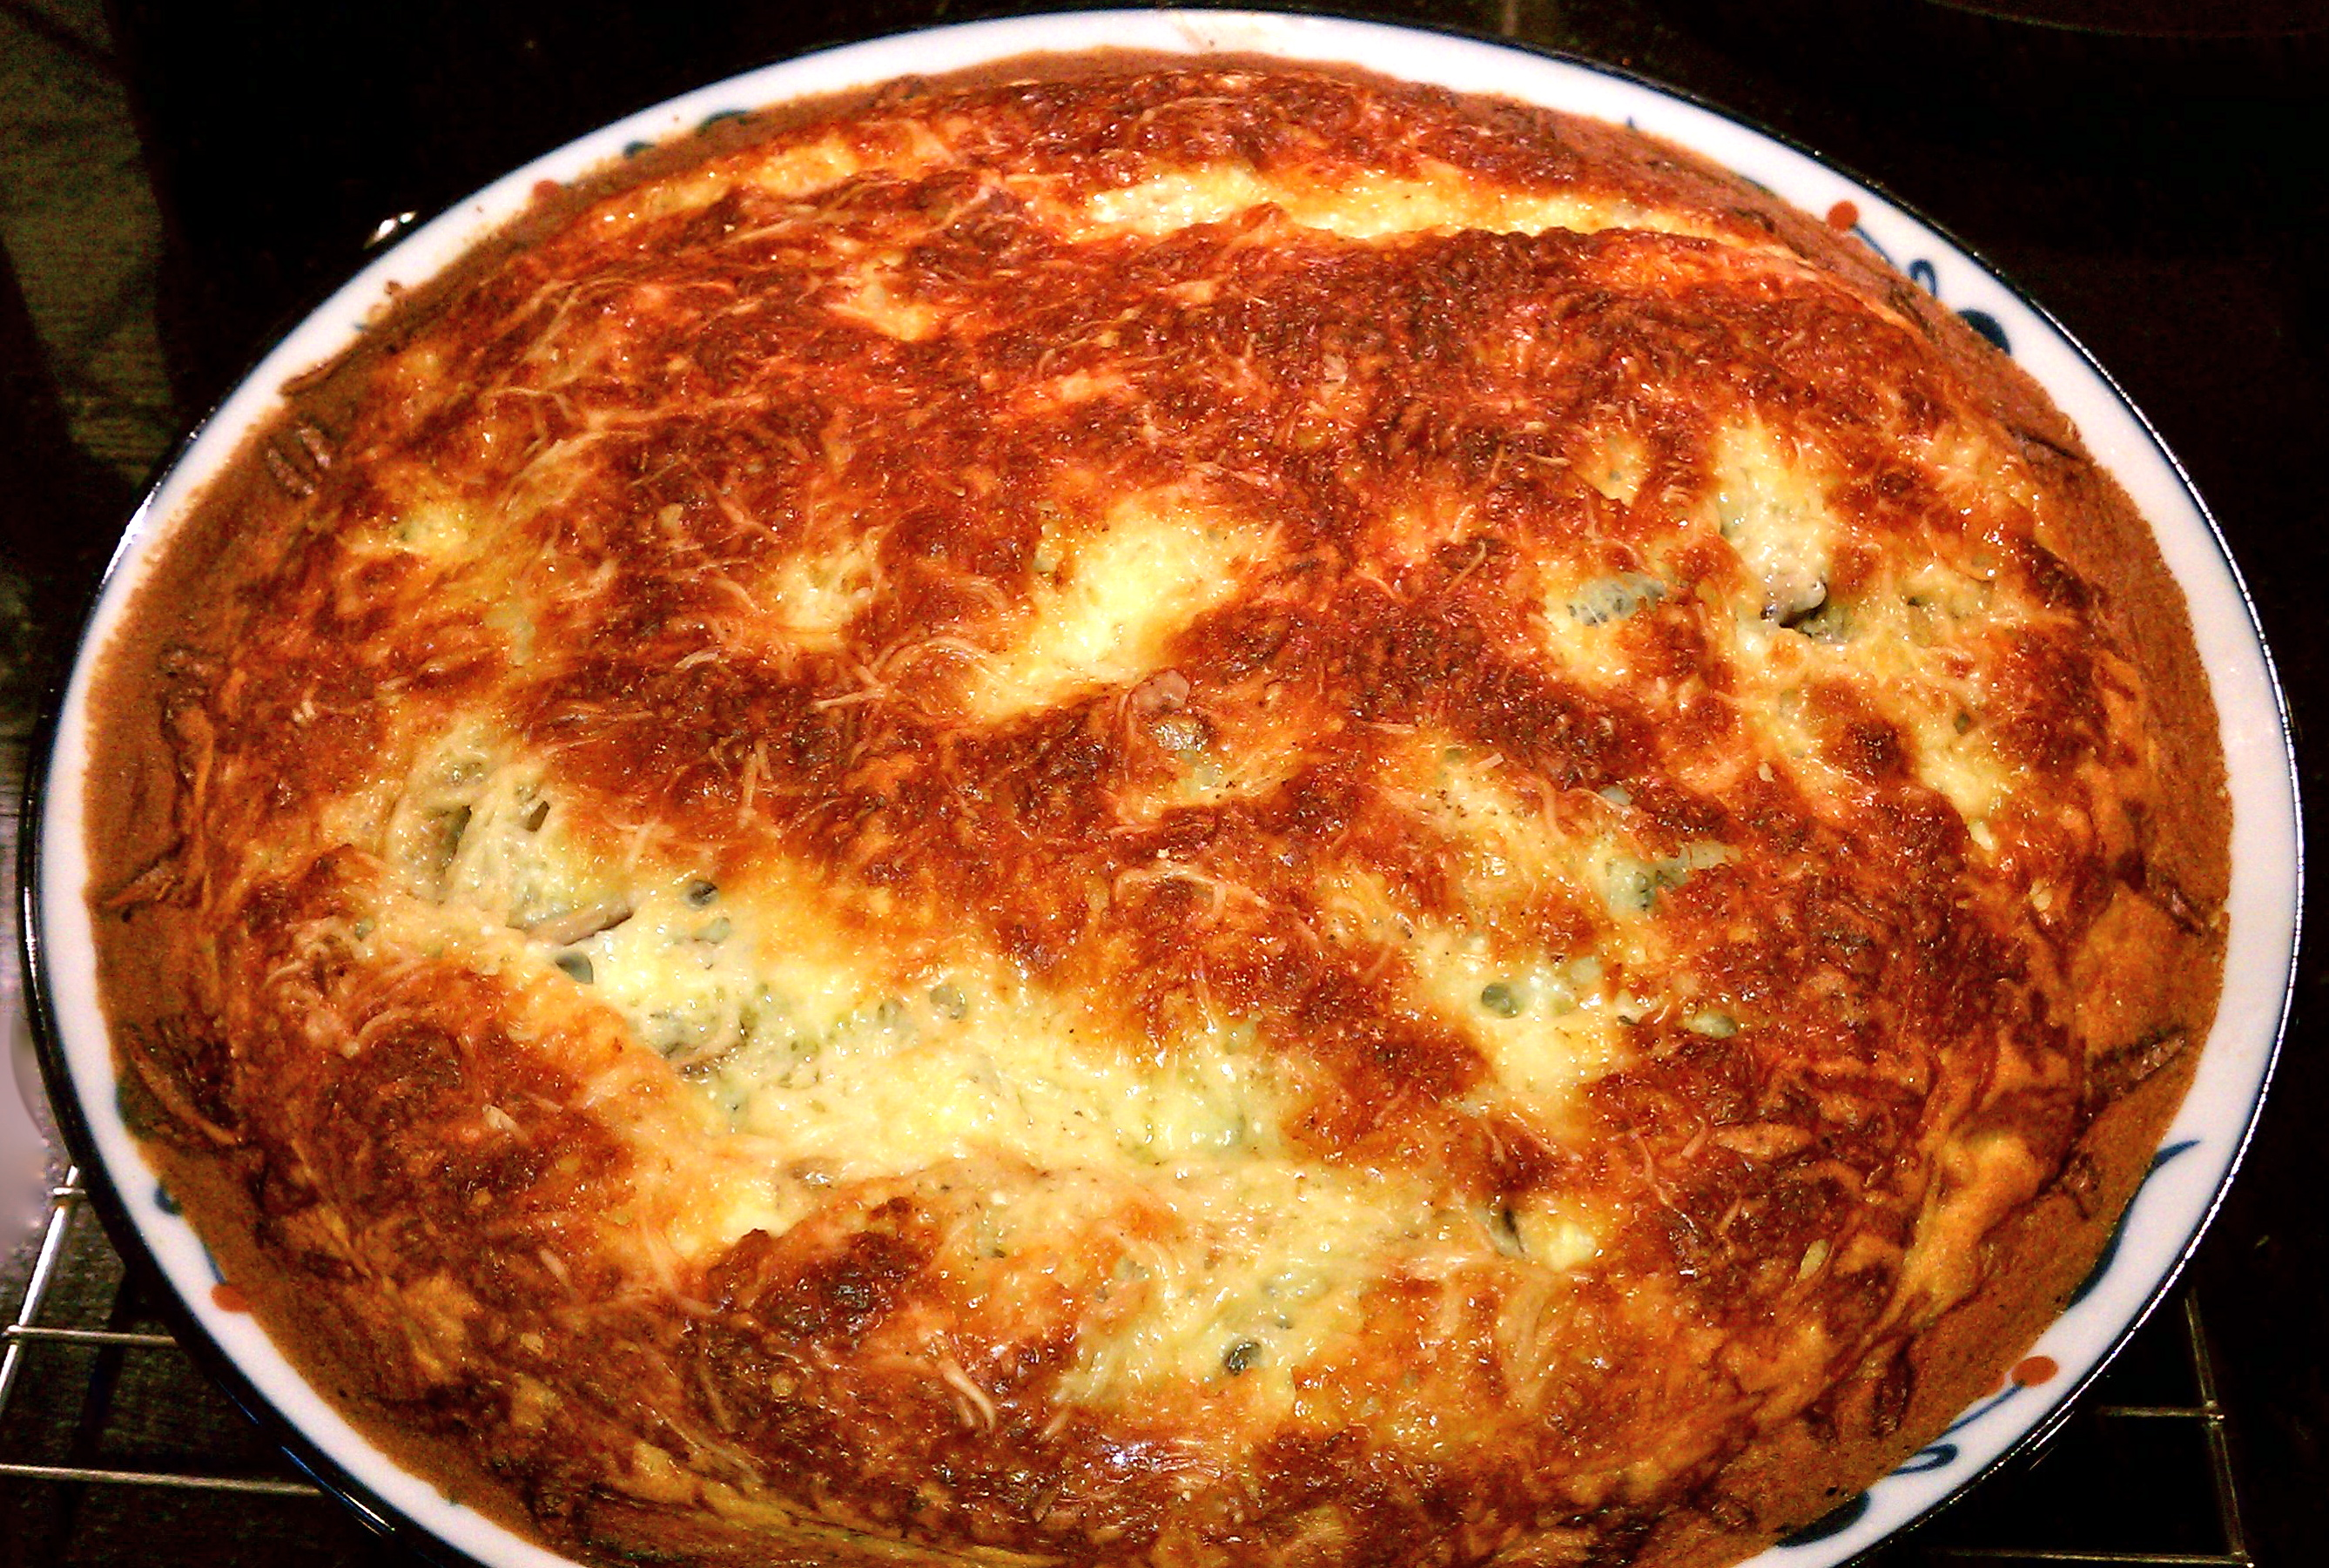 Sherried Mushroom Clafoutis